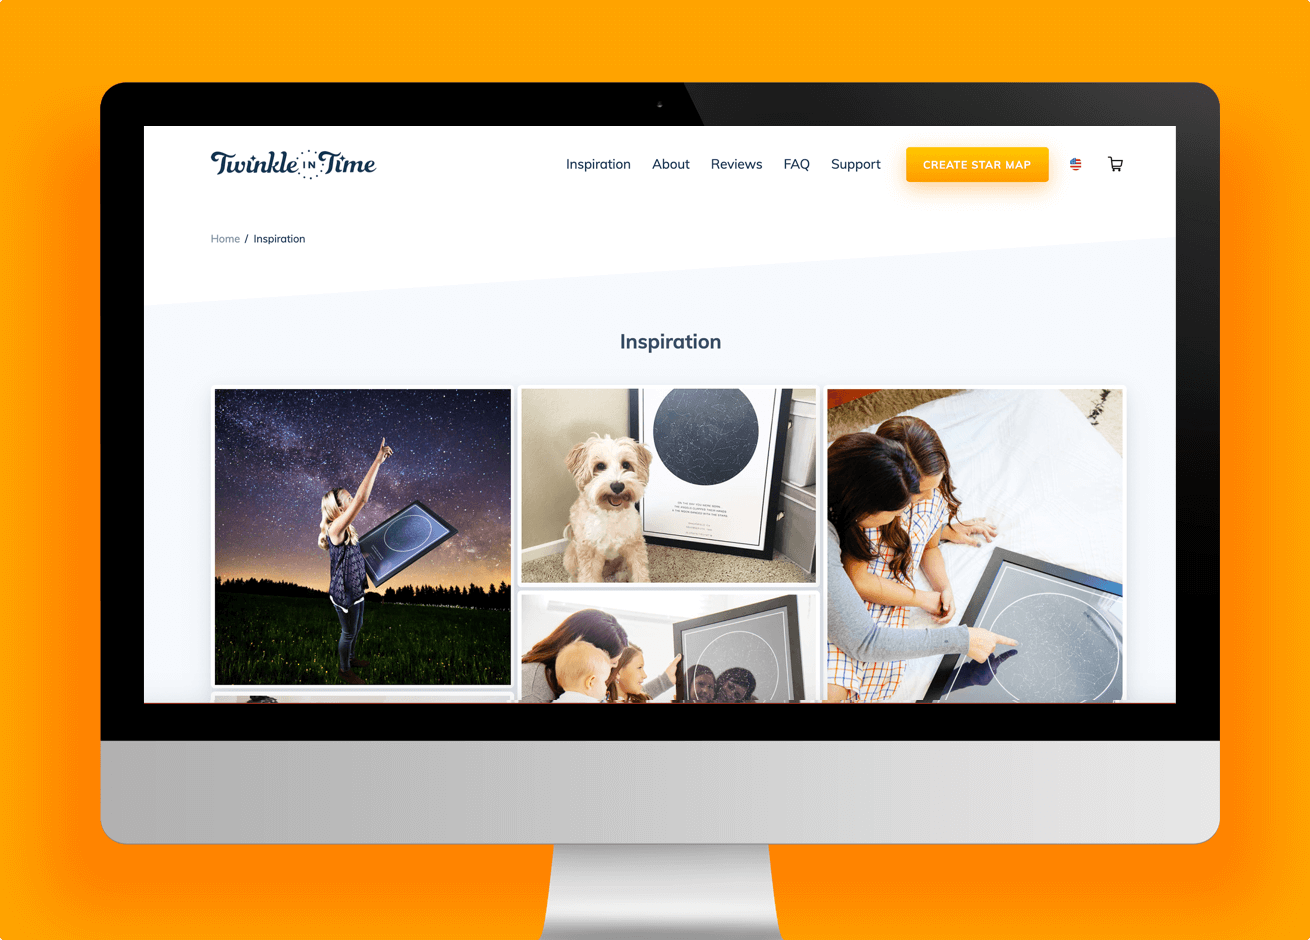 Twinkle in Time website